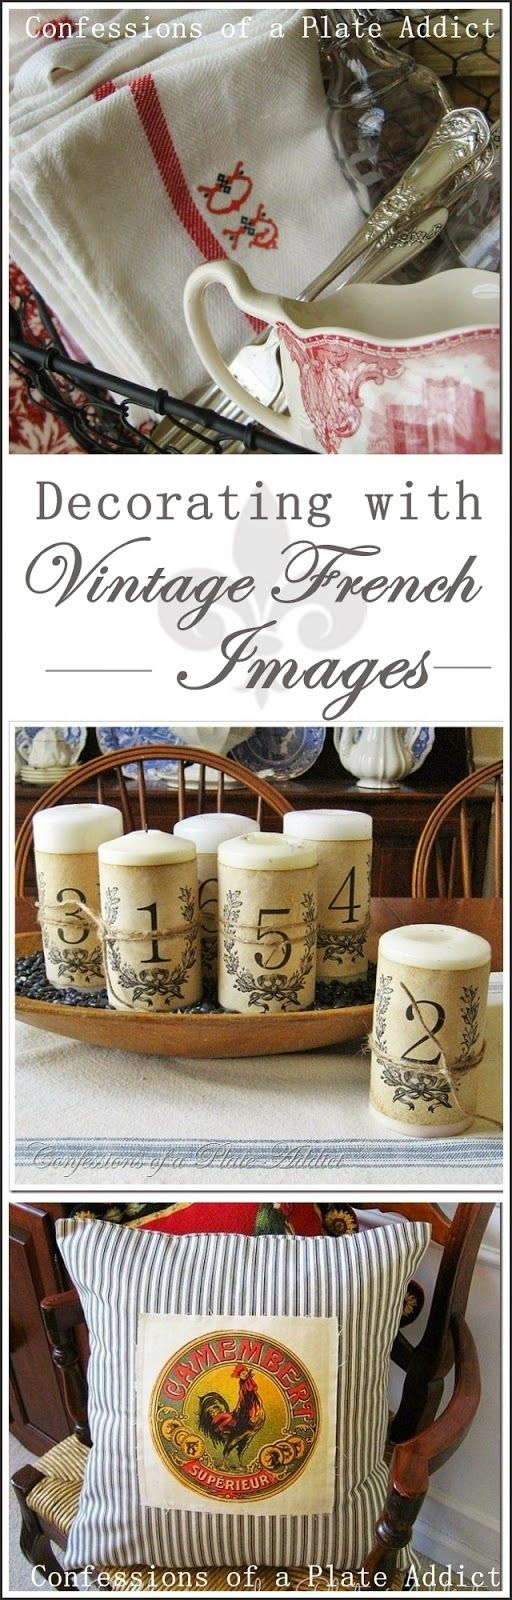 CONFESSIONS OF A PLATE ADDICT Decorating with Vintage French Images